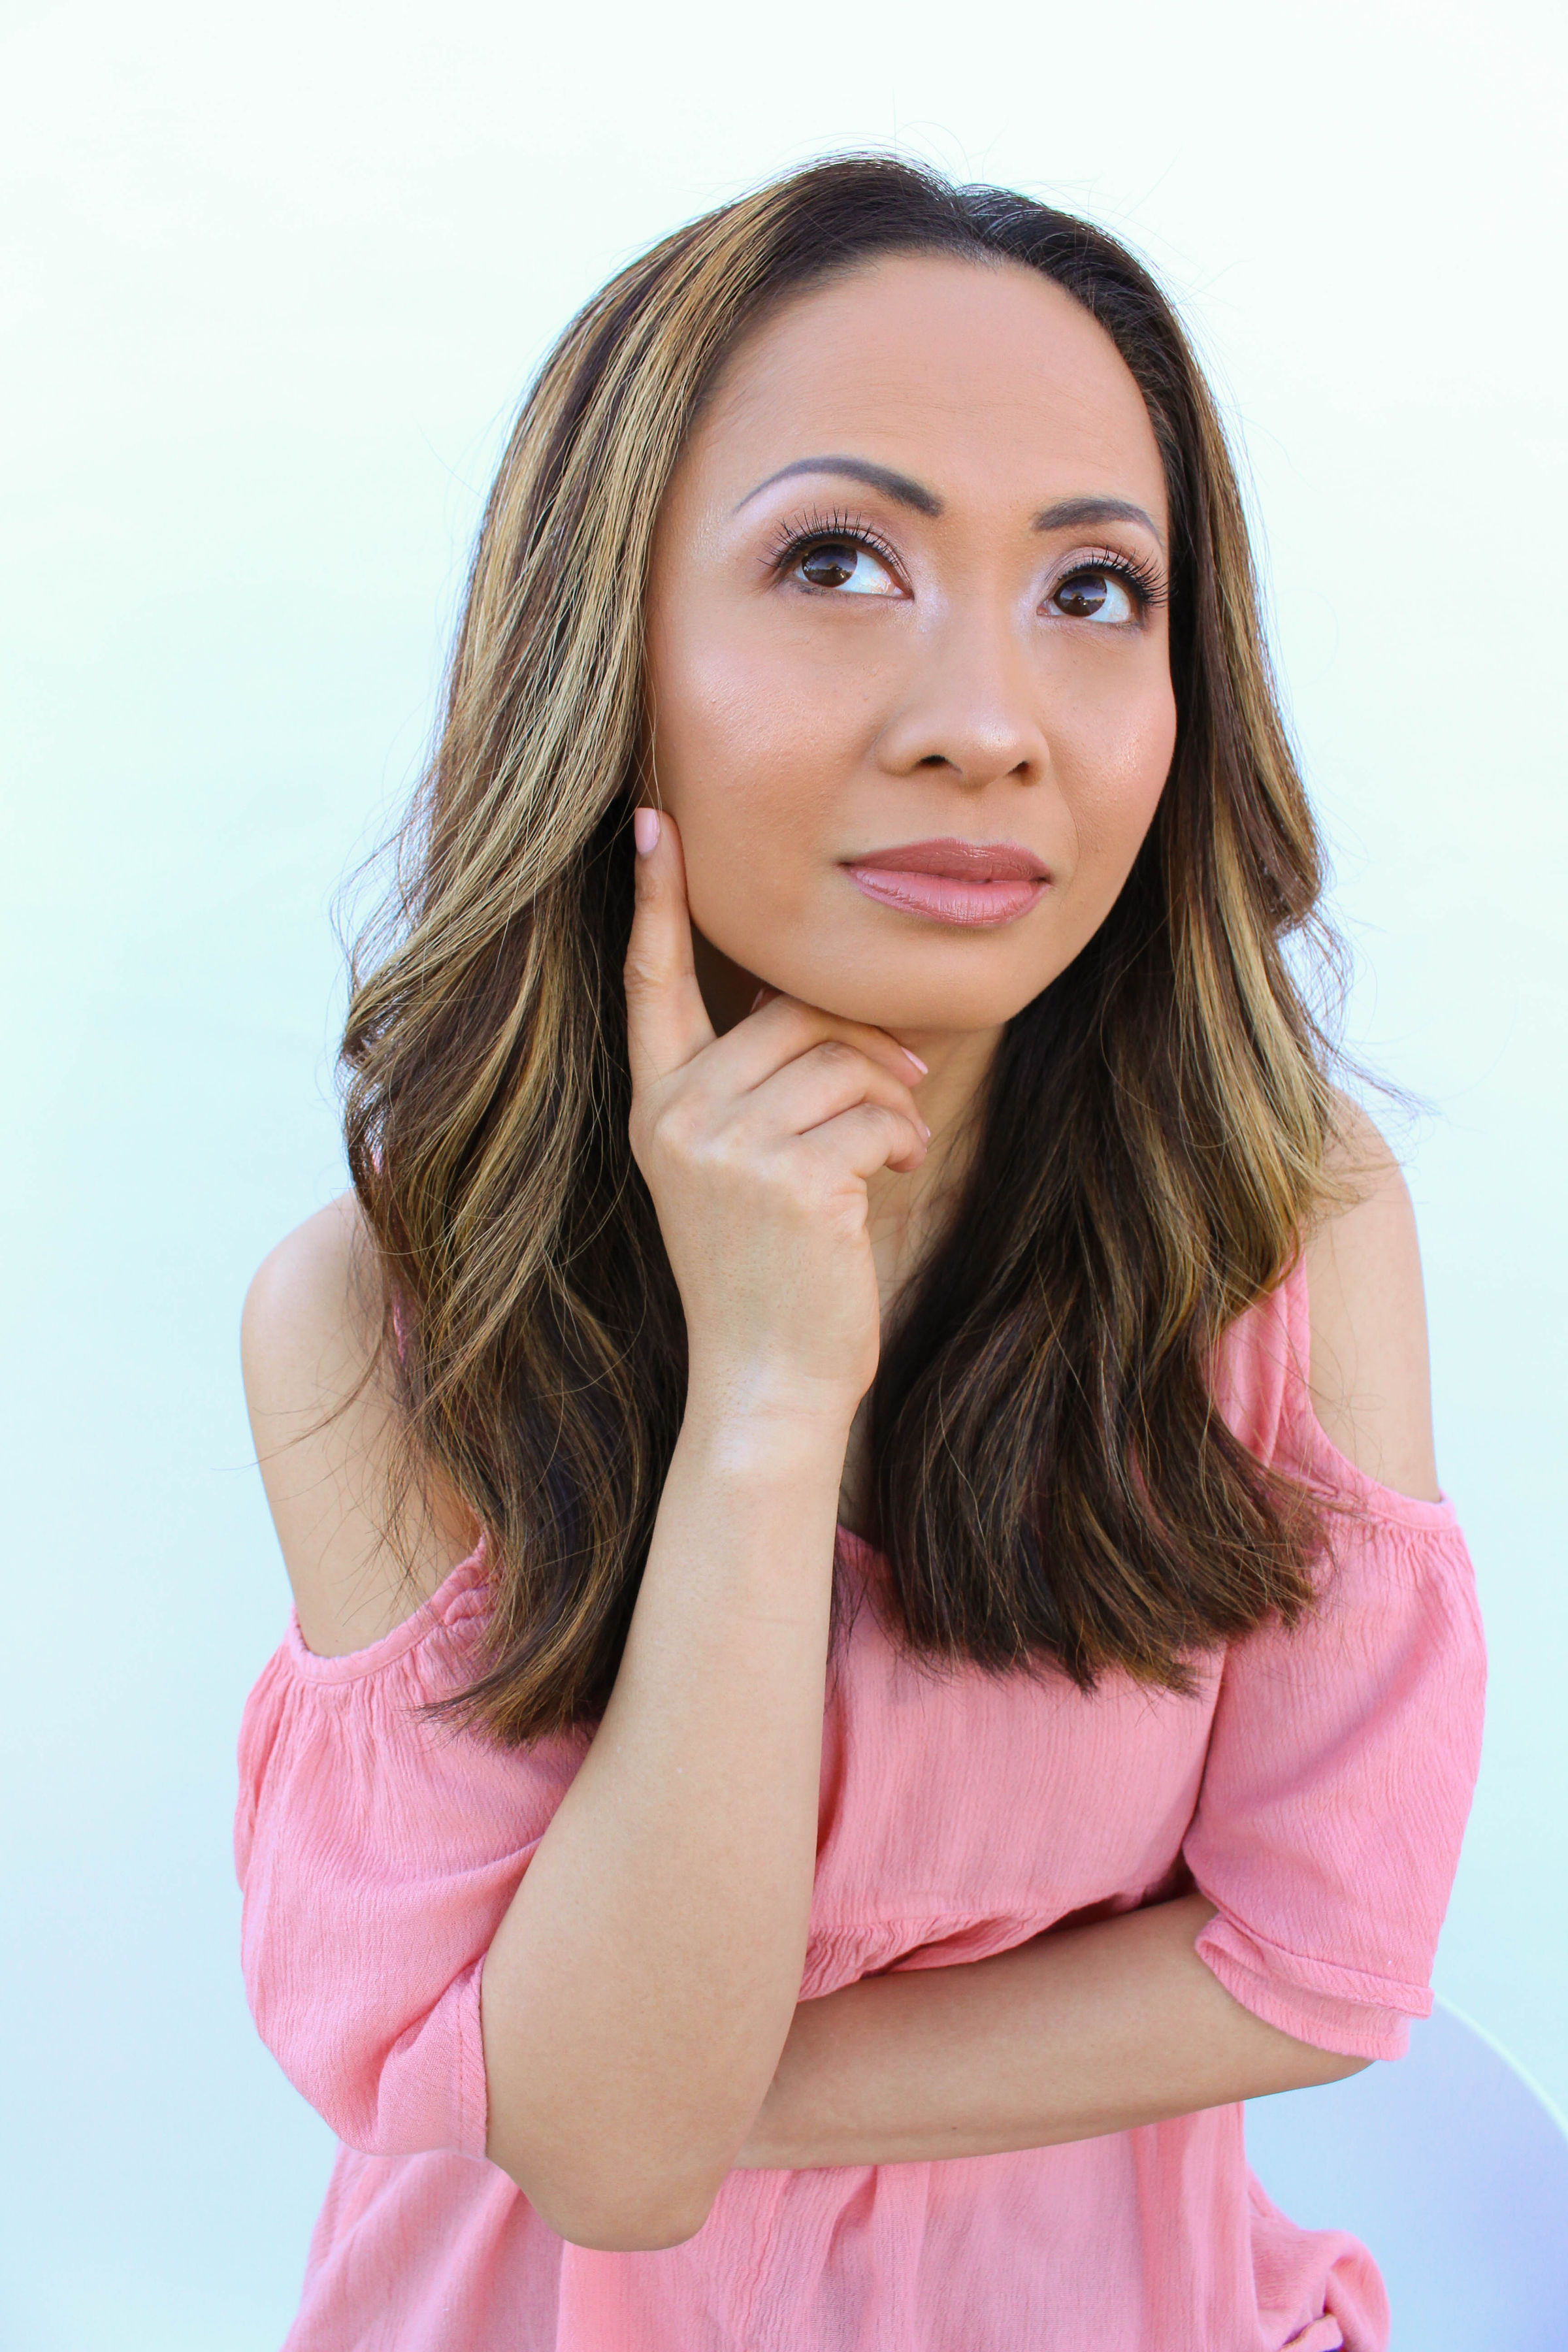 Can Thyroid Cancer Be Treated?